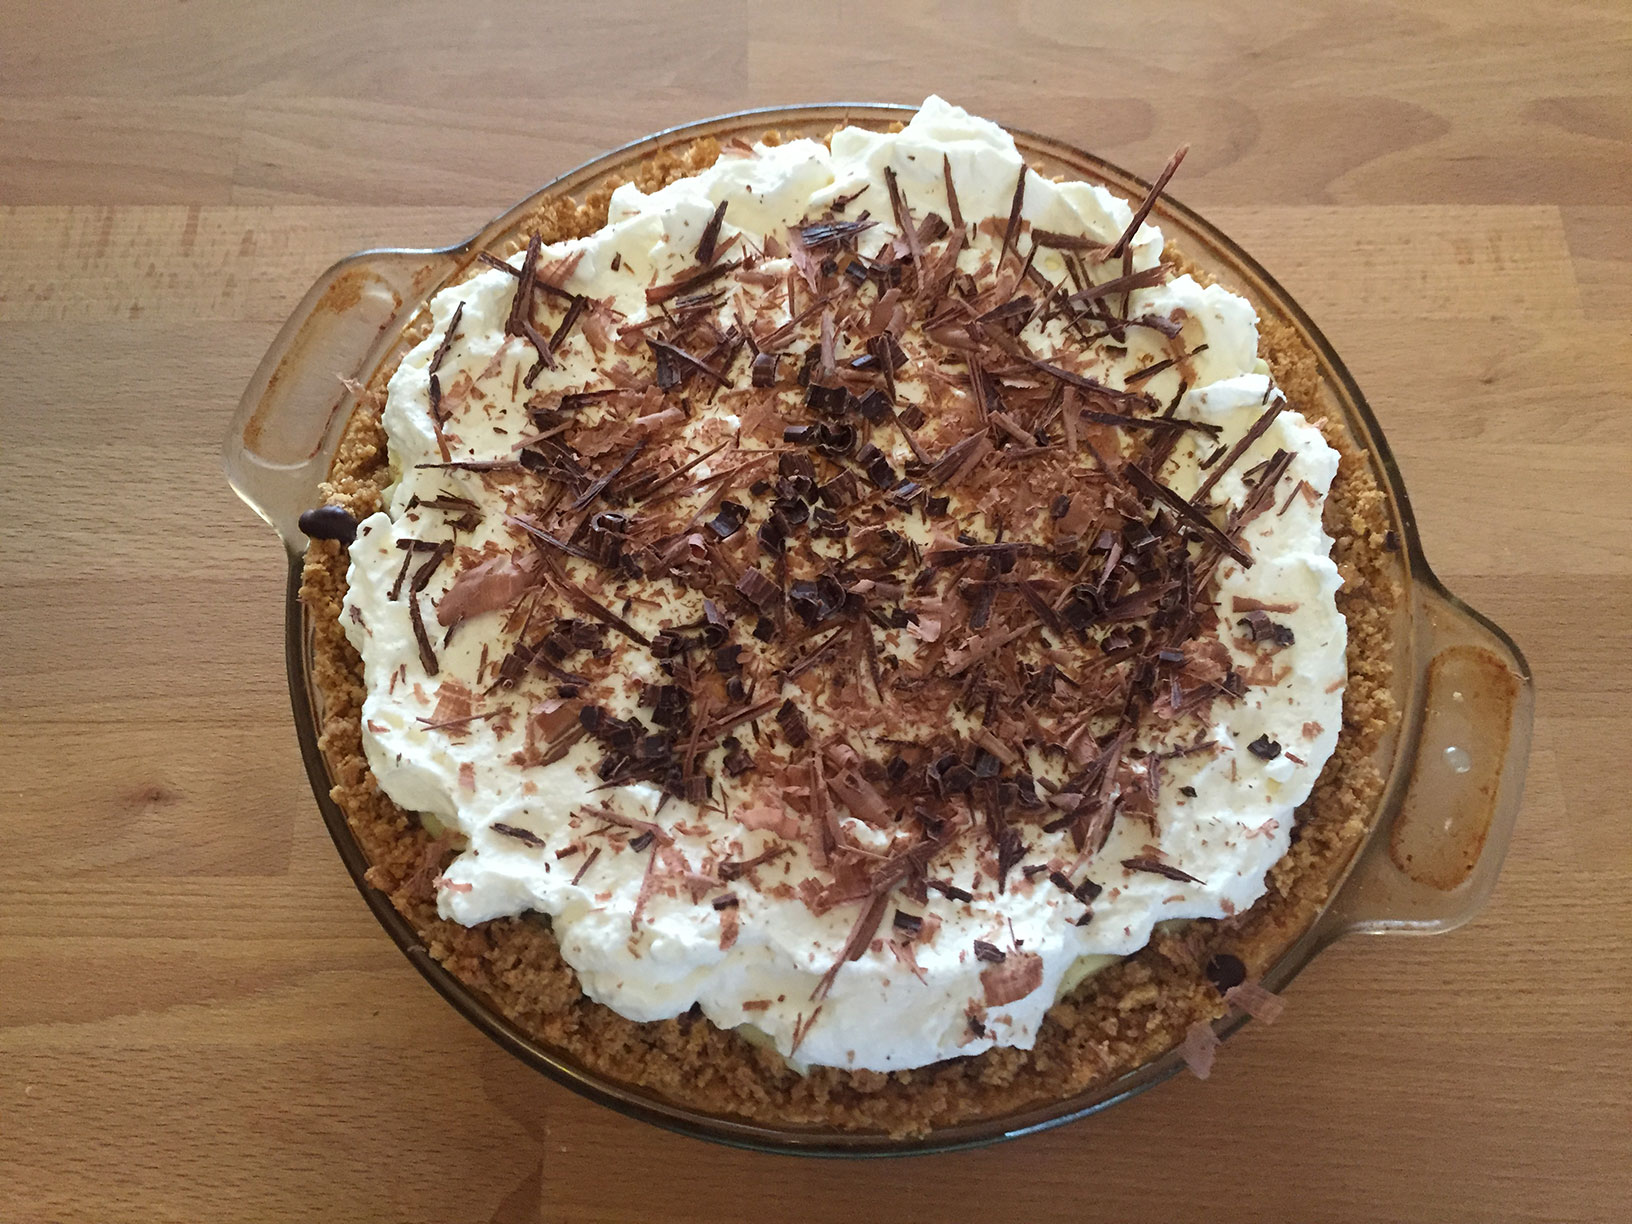 Banana cream pie, finished!